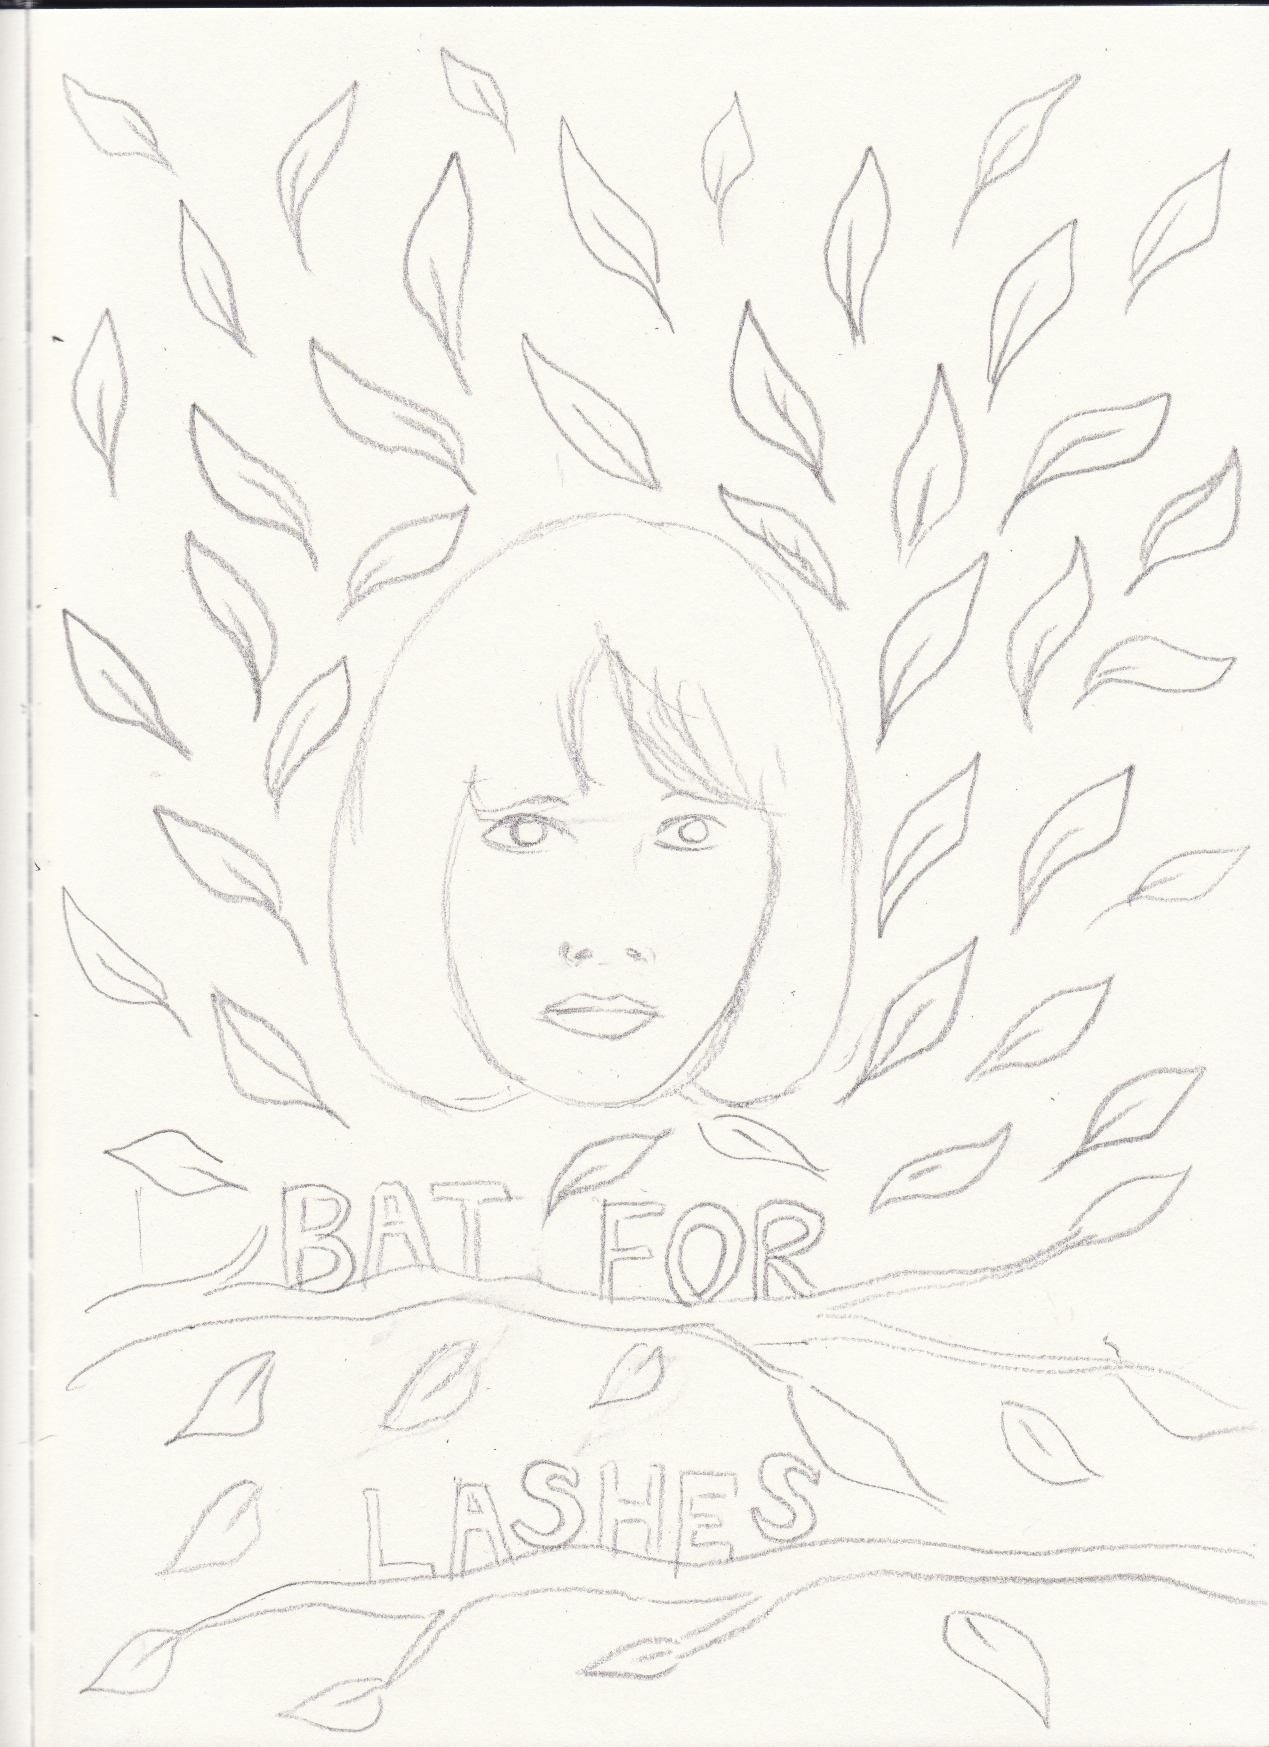 Bat for Lashes - Field day 2013 - image 5 - student project